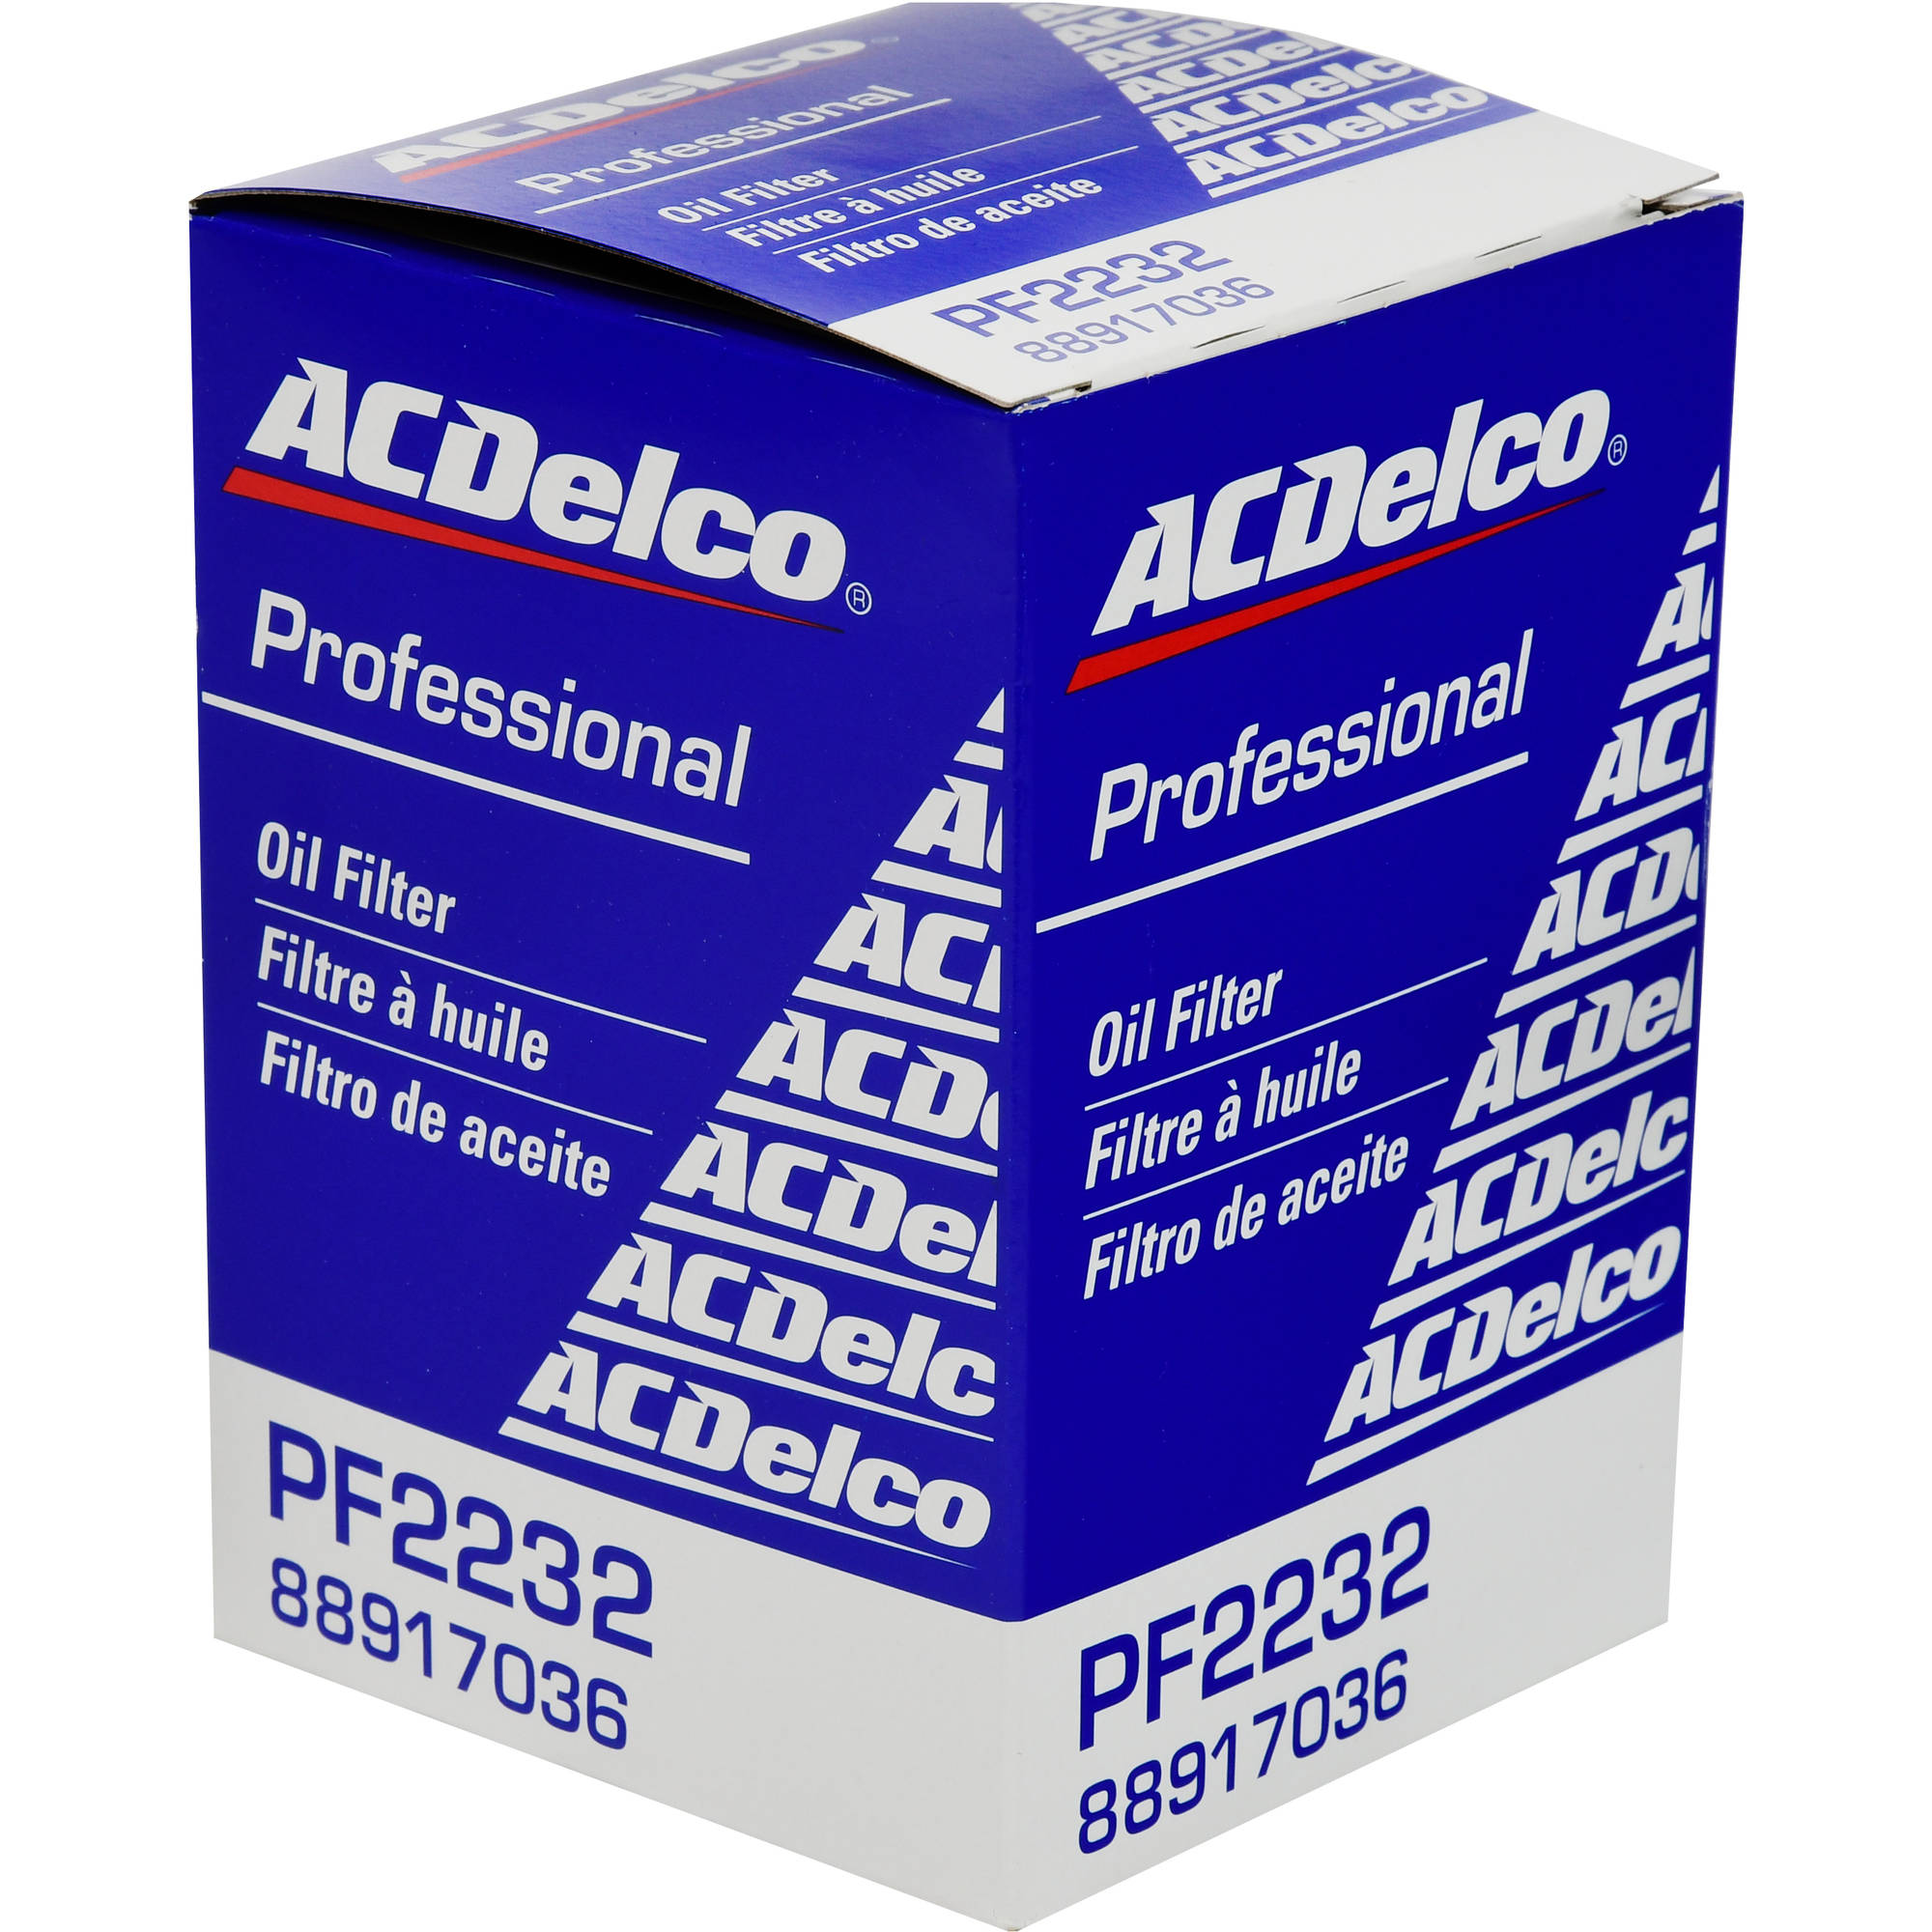 ACDelco PF2232 Professional Engine Oil Filter 88917036